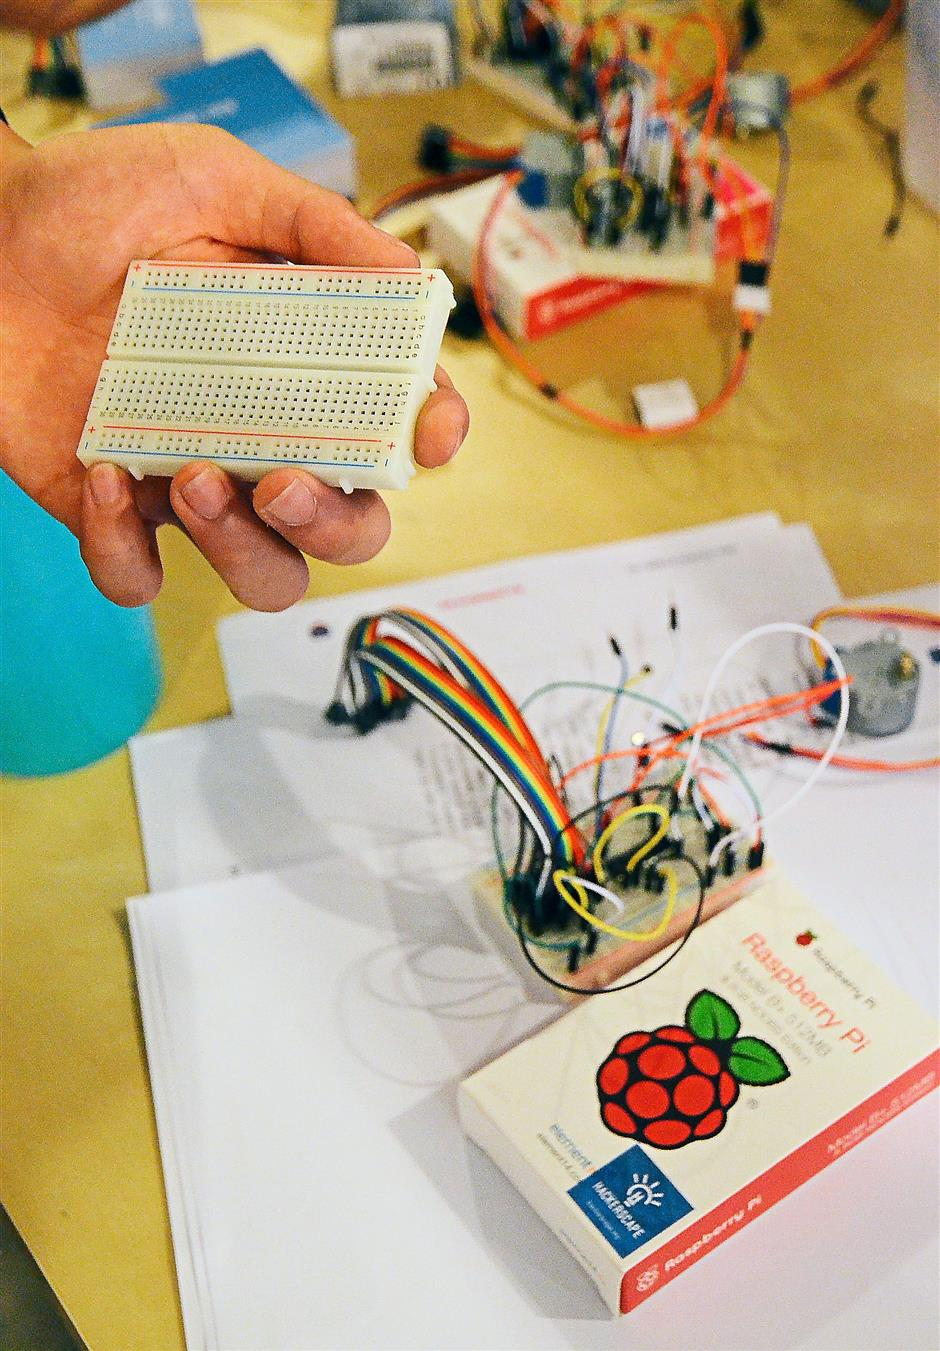 Mini wonder: Raspberry Pi is a programmable single-board computer which is used to teach newbies the basics of computing.